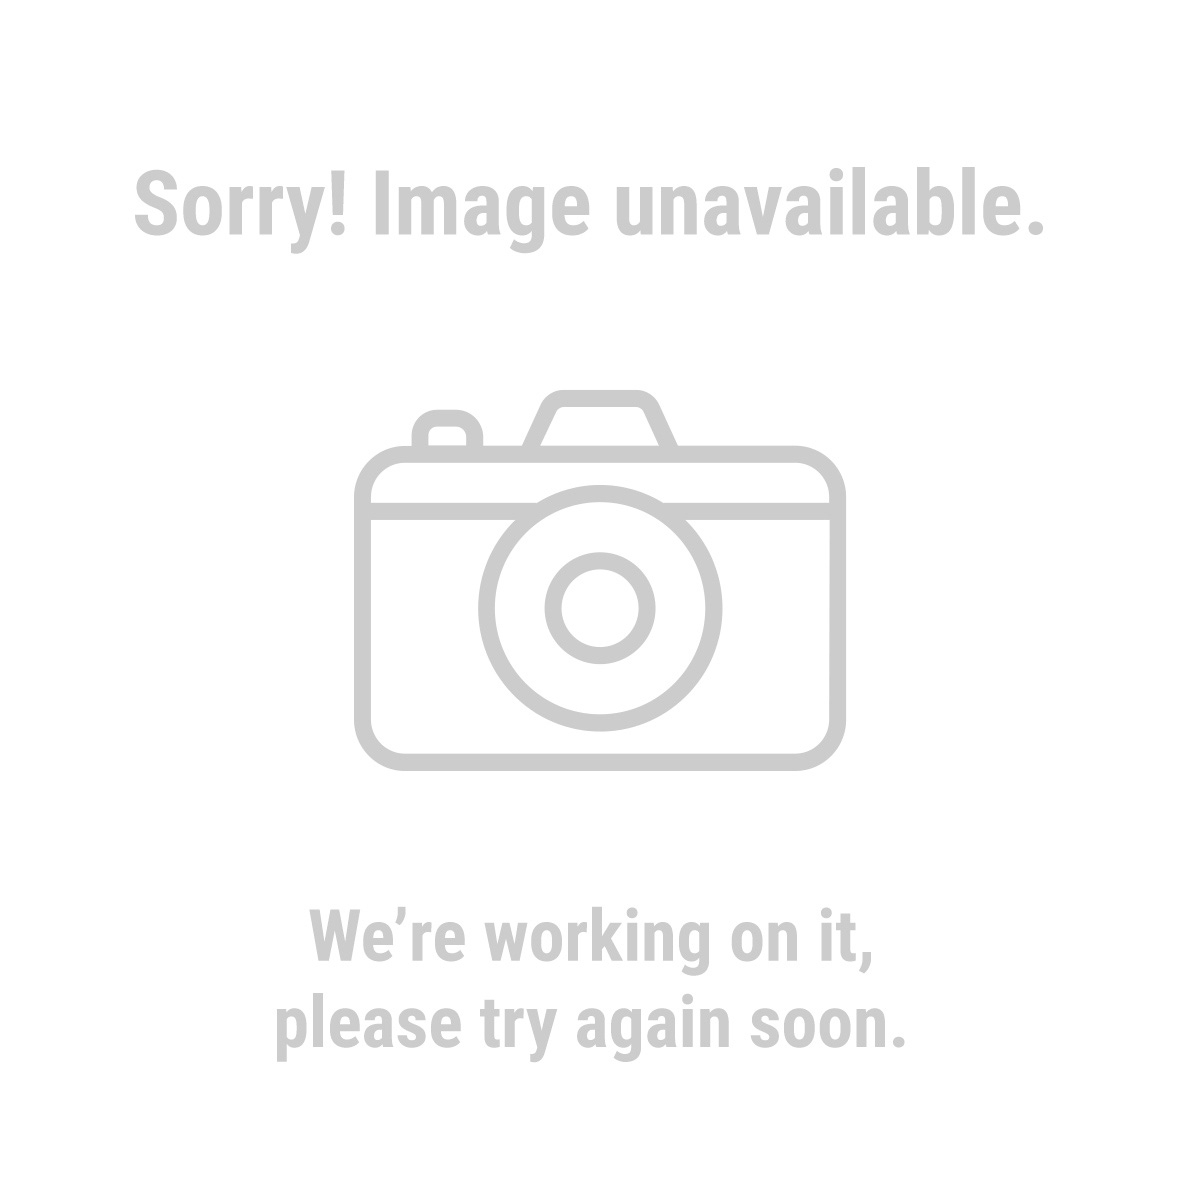 Haul-Master 65961 ATV Hitch Adapter